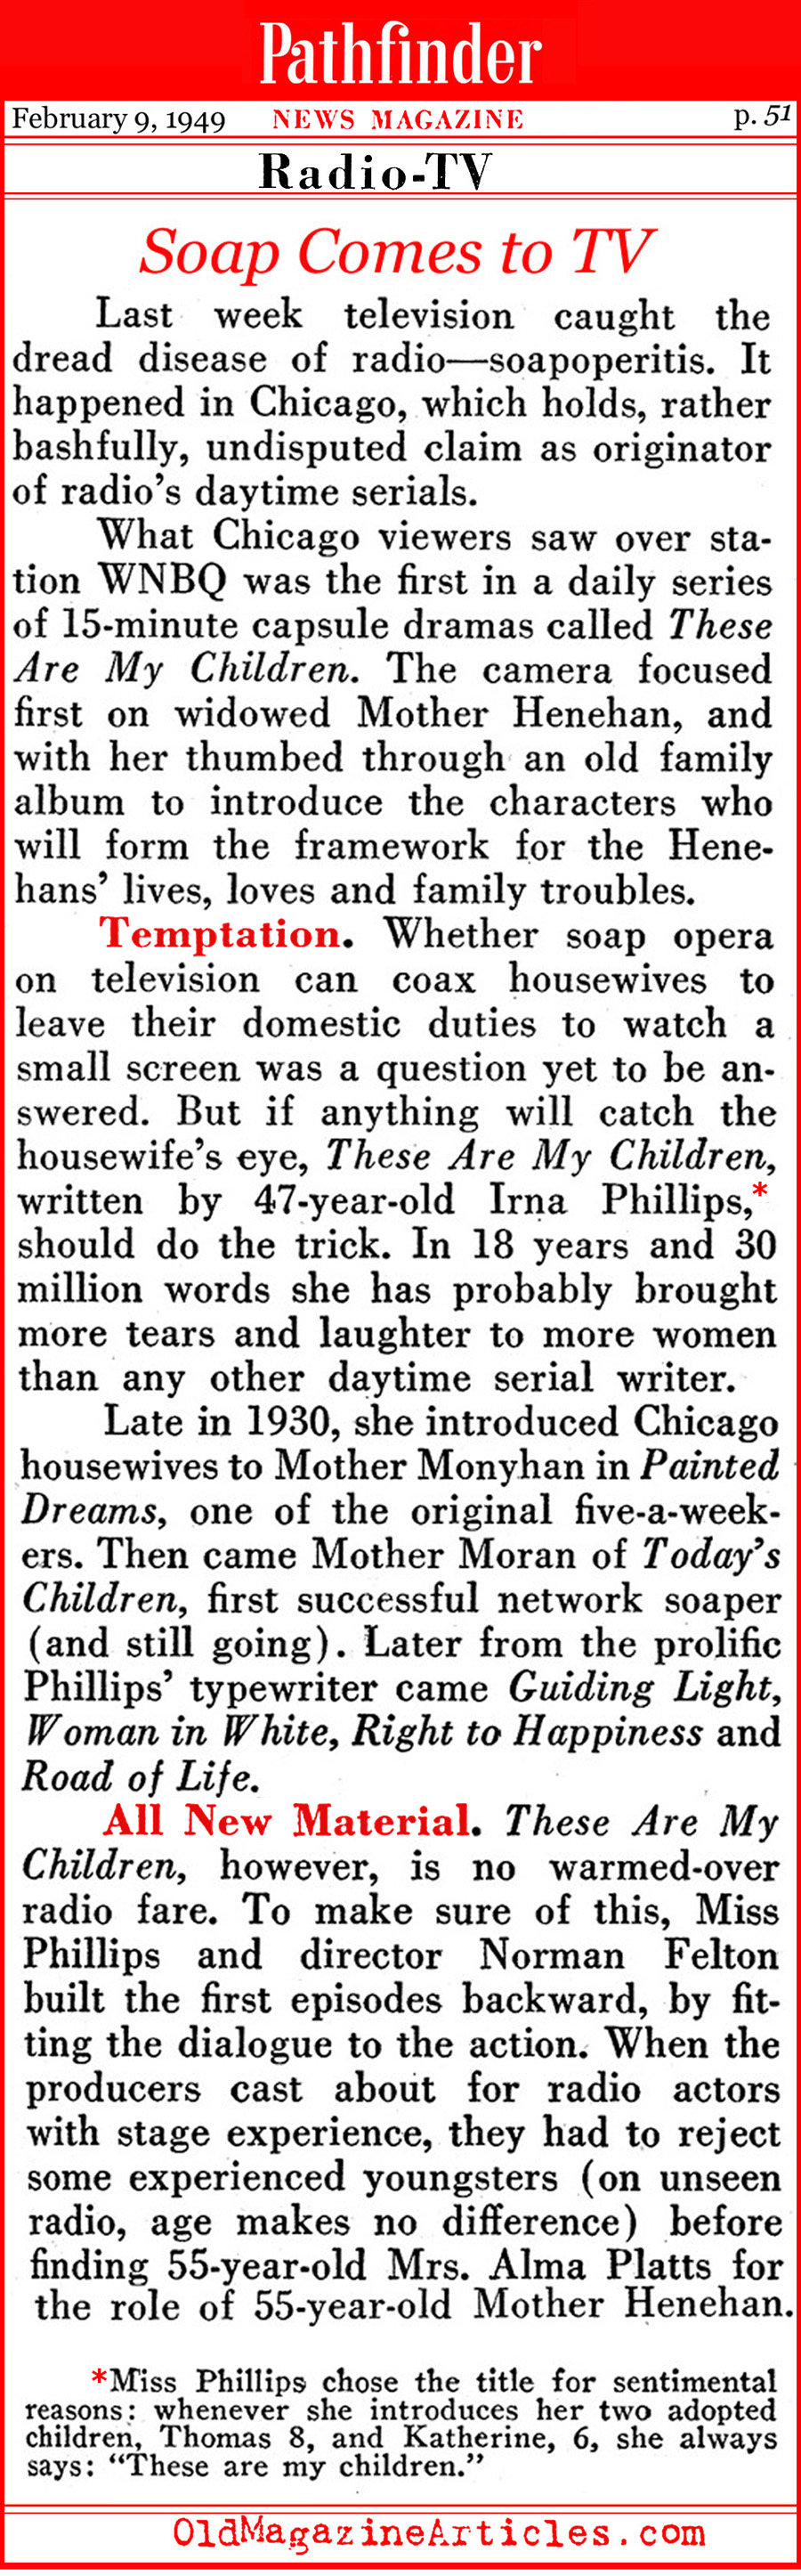 Soap Operas Come to Television (Pathfinder Magazine, 1949)